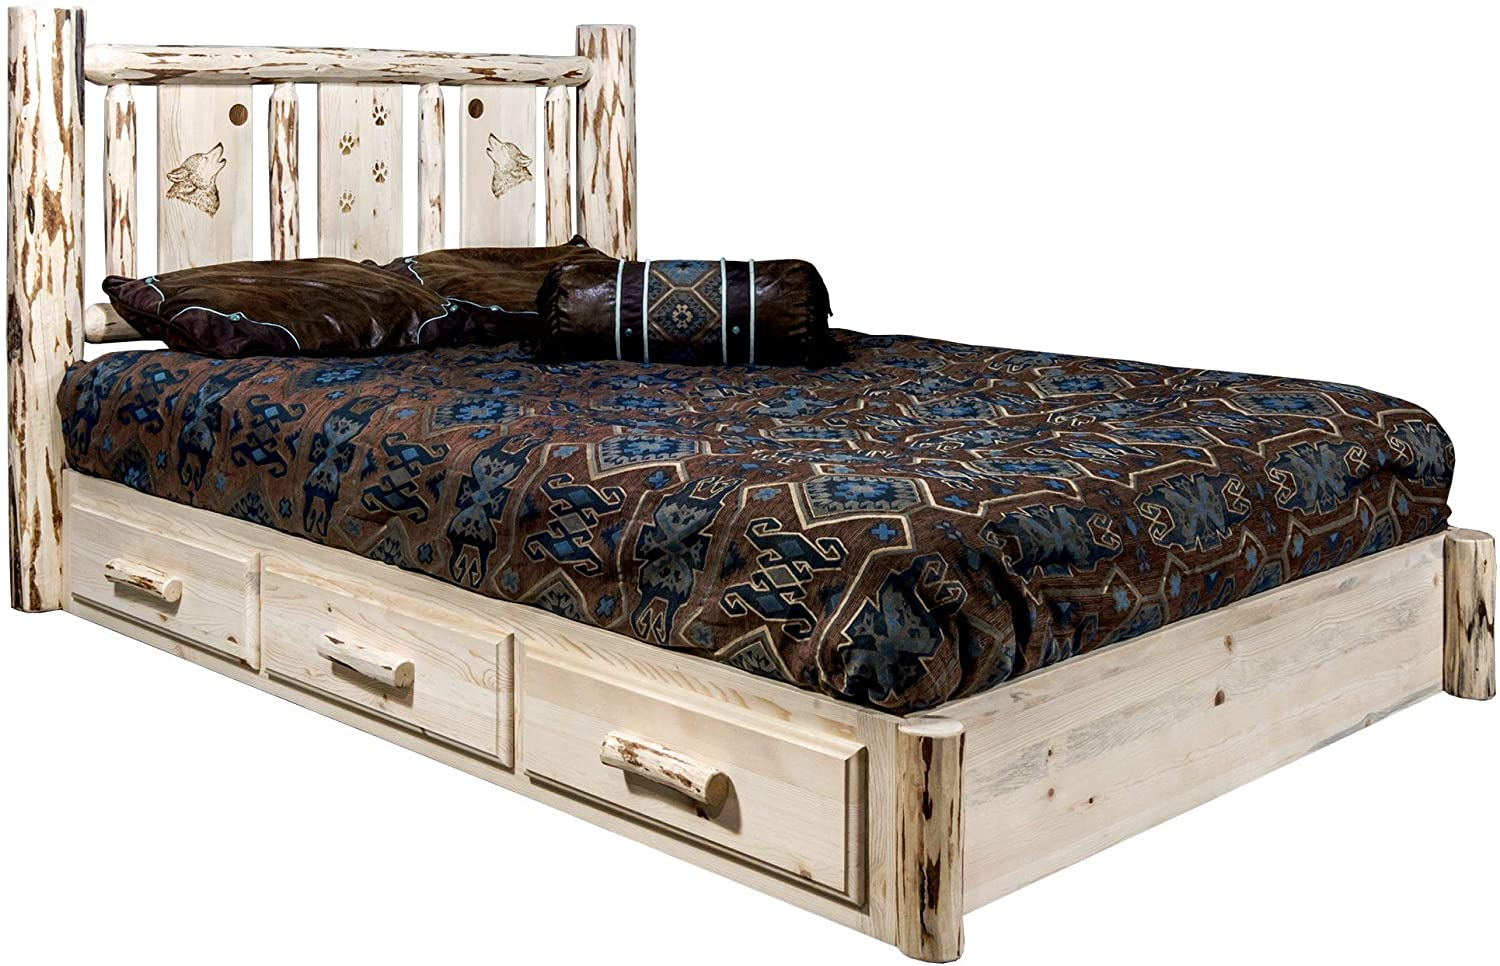 Montana Woodworks Wolf Design Laser Engraved Platform Bed in Ready Finish (Full: 83 in. L x 60 in. W x 47 in. H (262 lbs.))